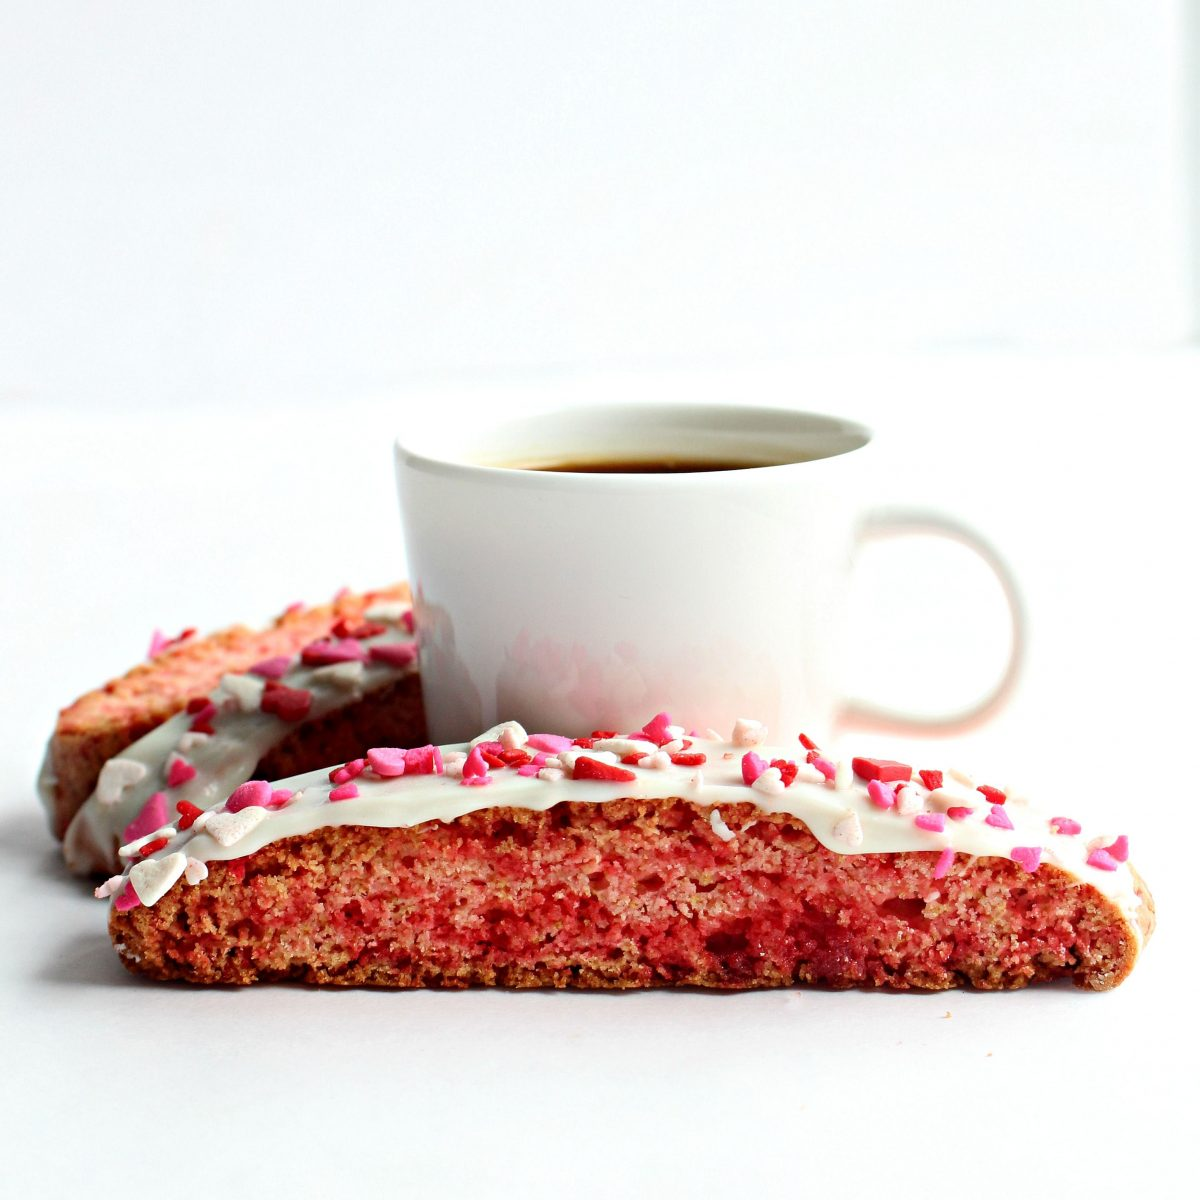 Pink biscotti topped with white chocolate and sprinkles in front of espresso mug.